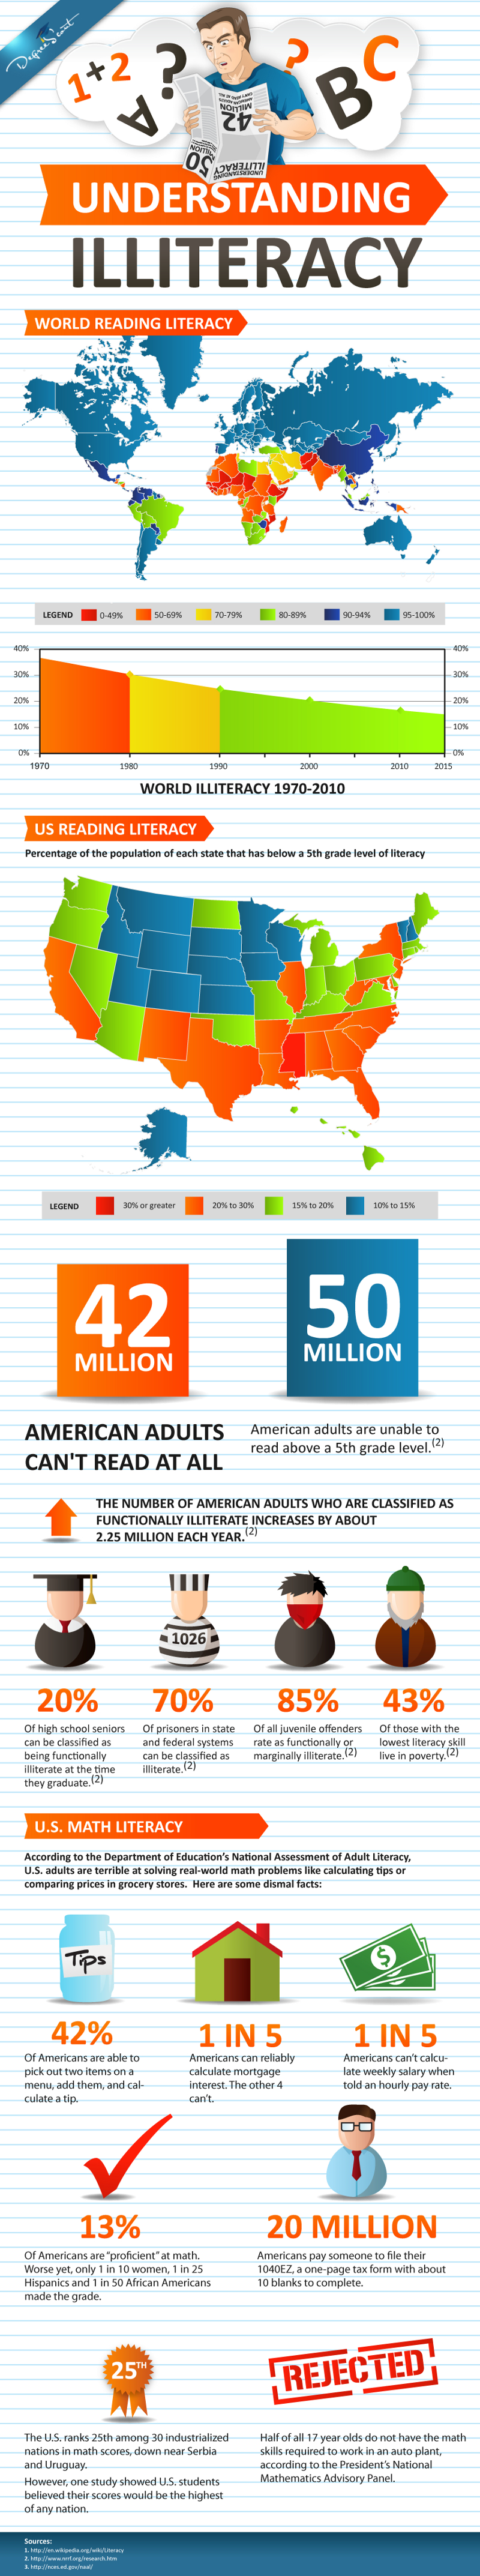 Illiteracy Statistics Worldwide US Literacy Rate and Illiteracy Statistics